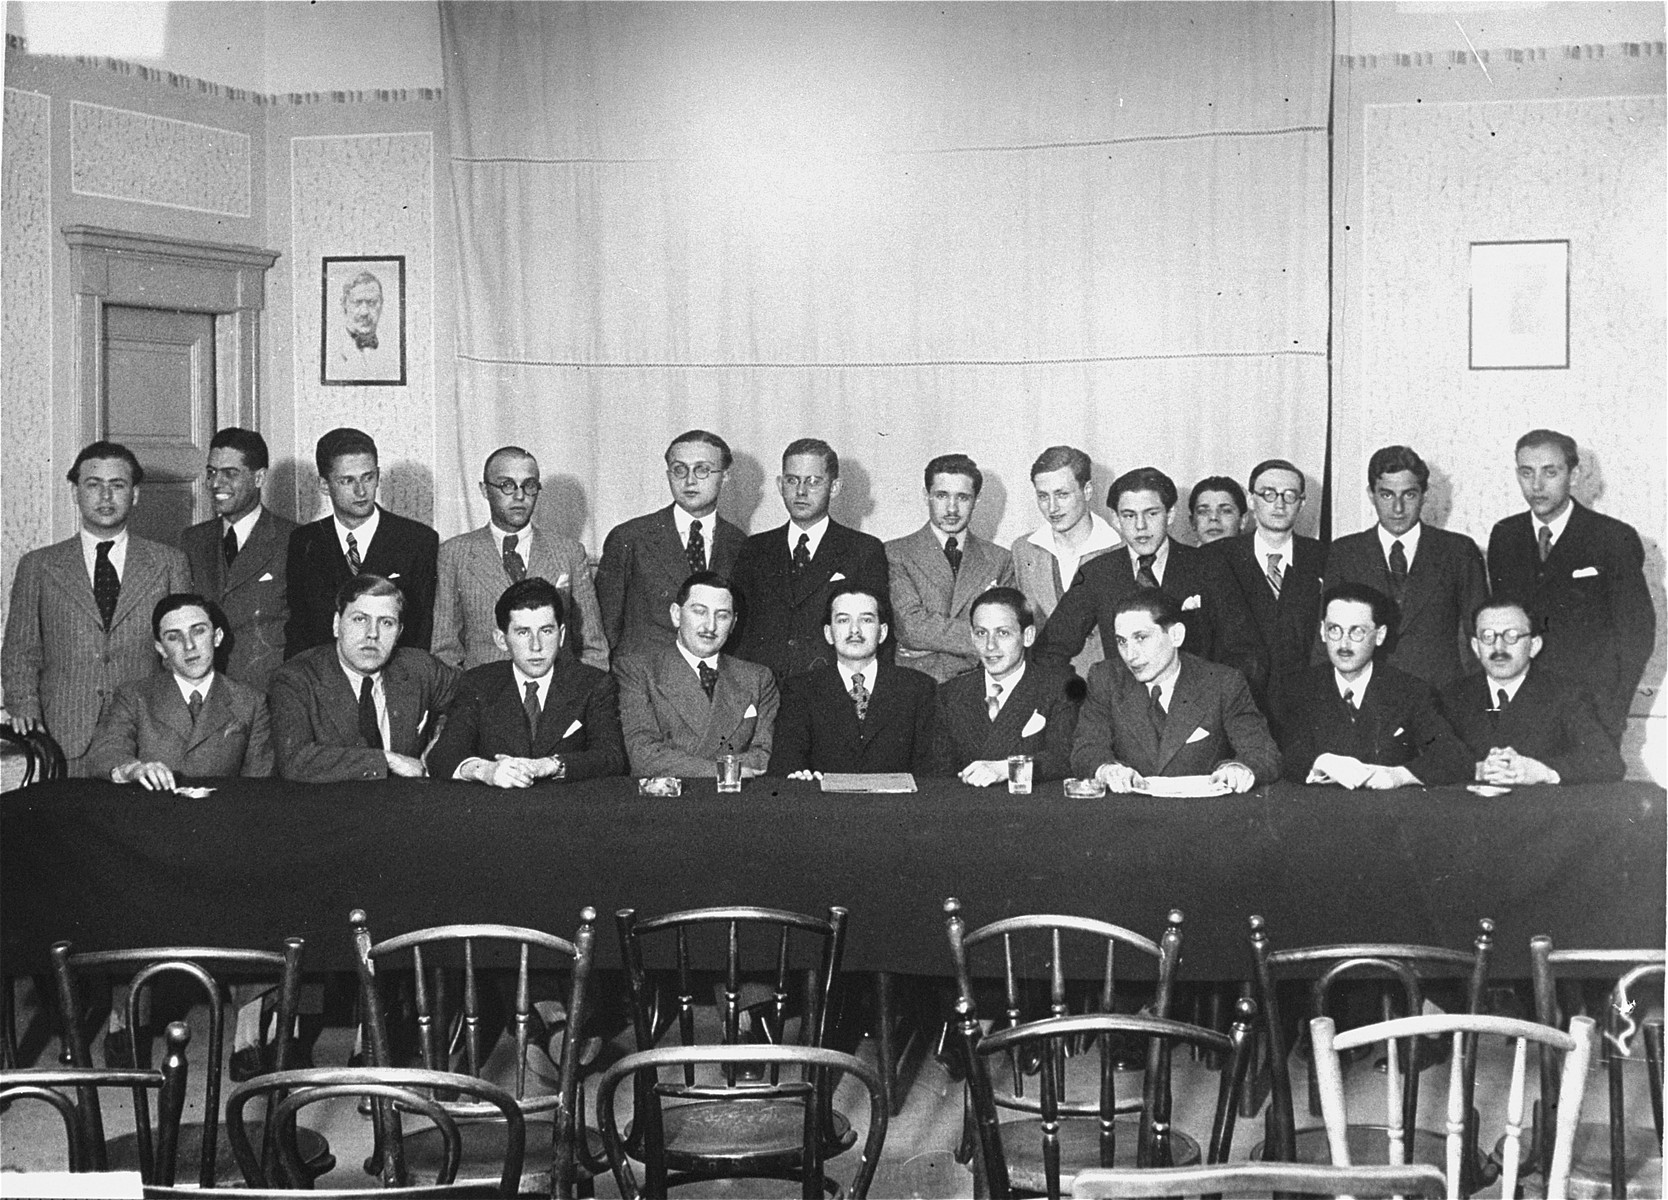 Group portrait of the leadership of the Association of Hungarian Israelite University Students (Magyar Izraelita Foiskolai Hallgatok Orszagos Egyesulete).    Among those pictured are Ferencz Gatner and Siegfried Roth.